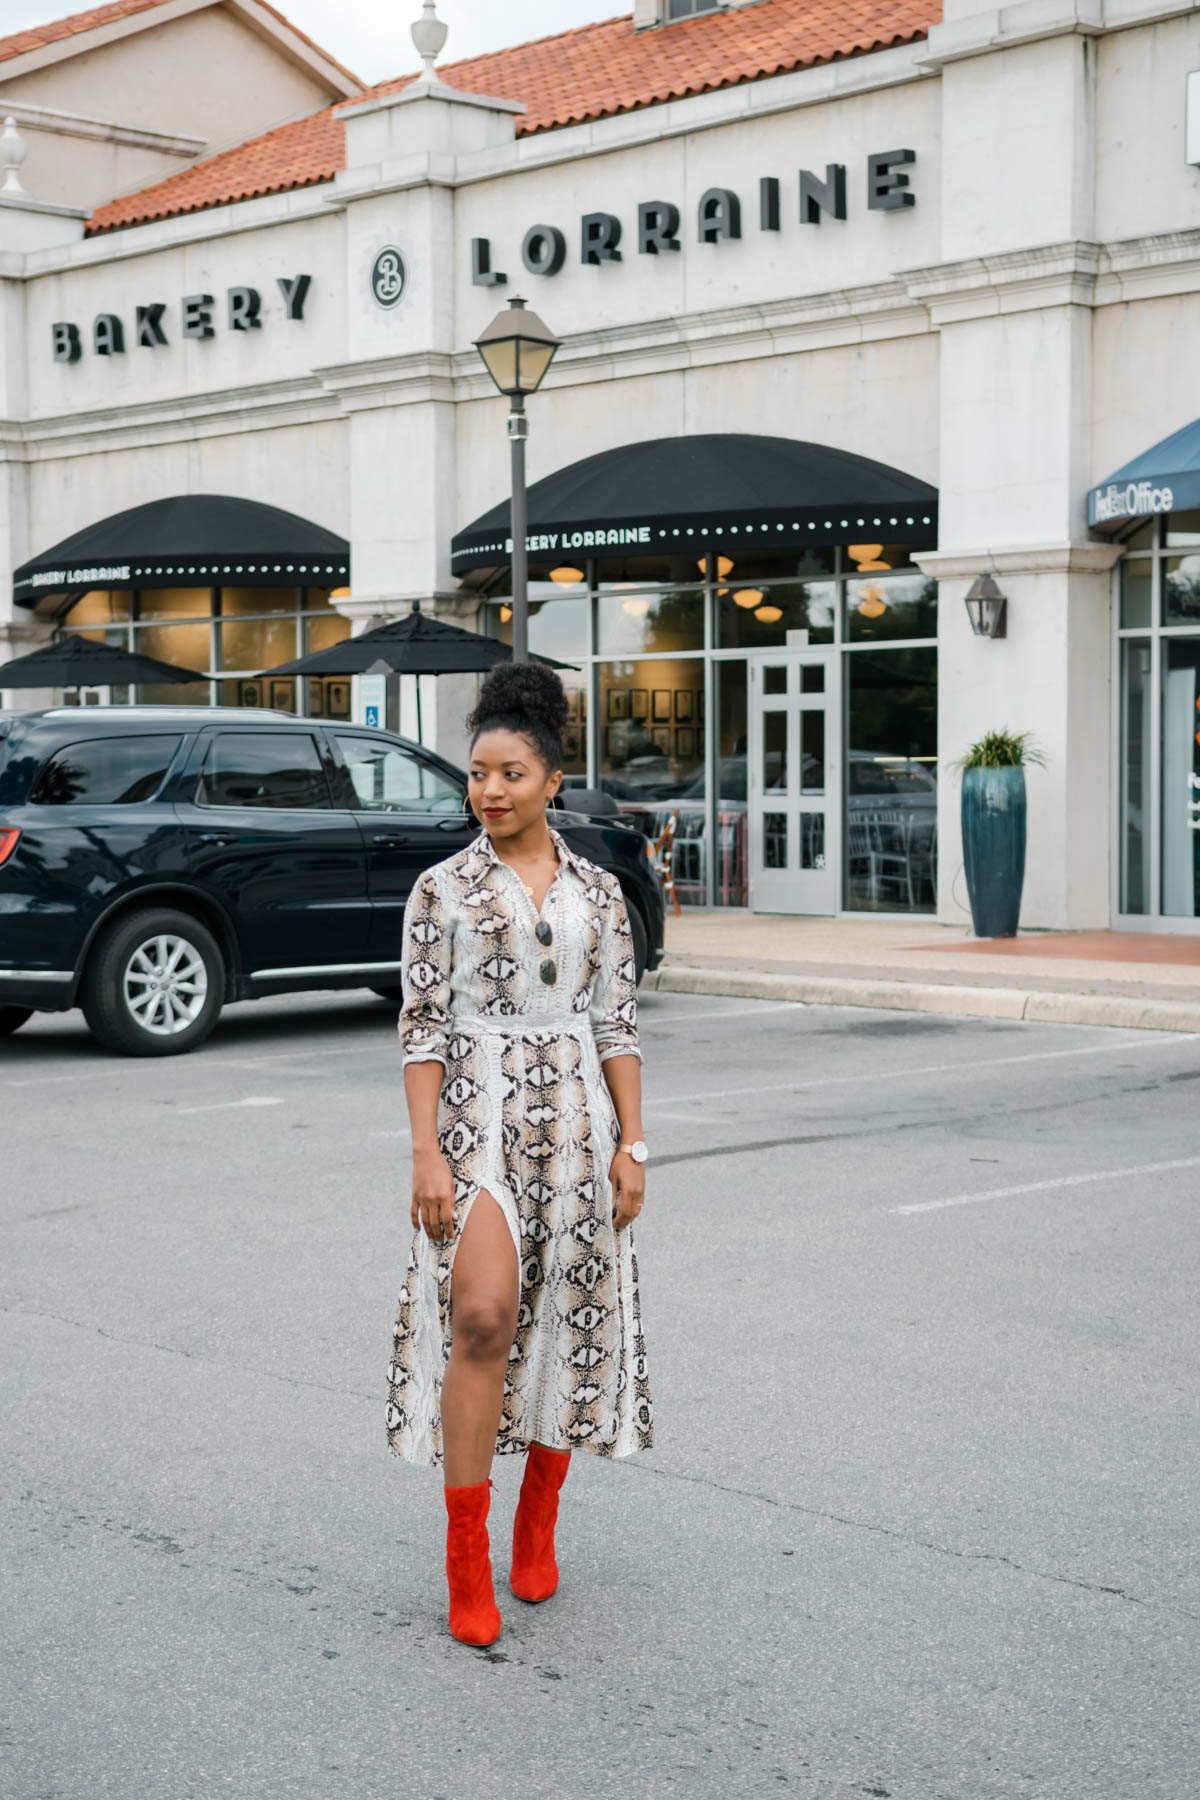 topshop snakeprint dress with boots outfit